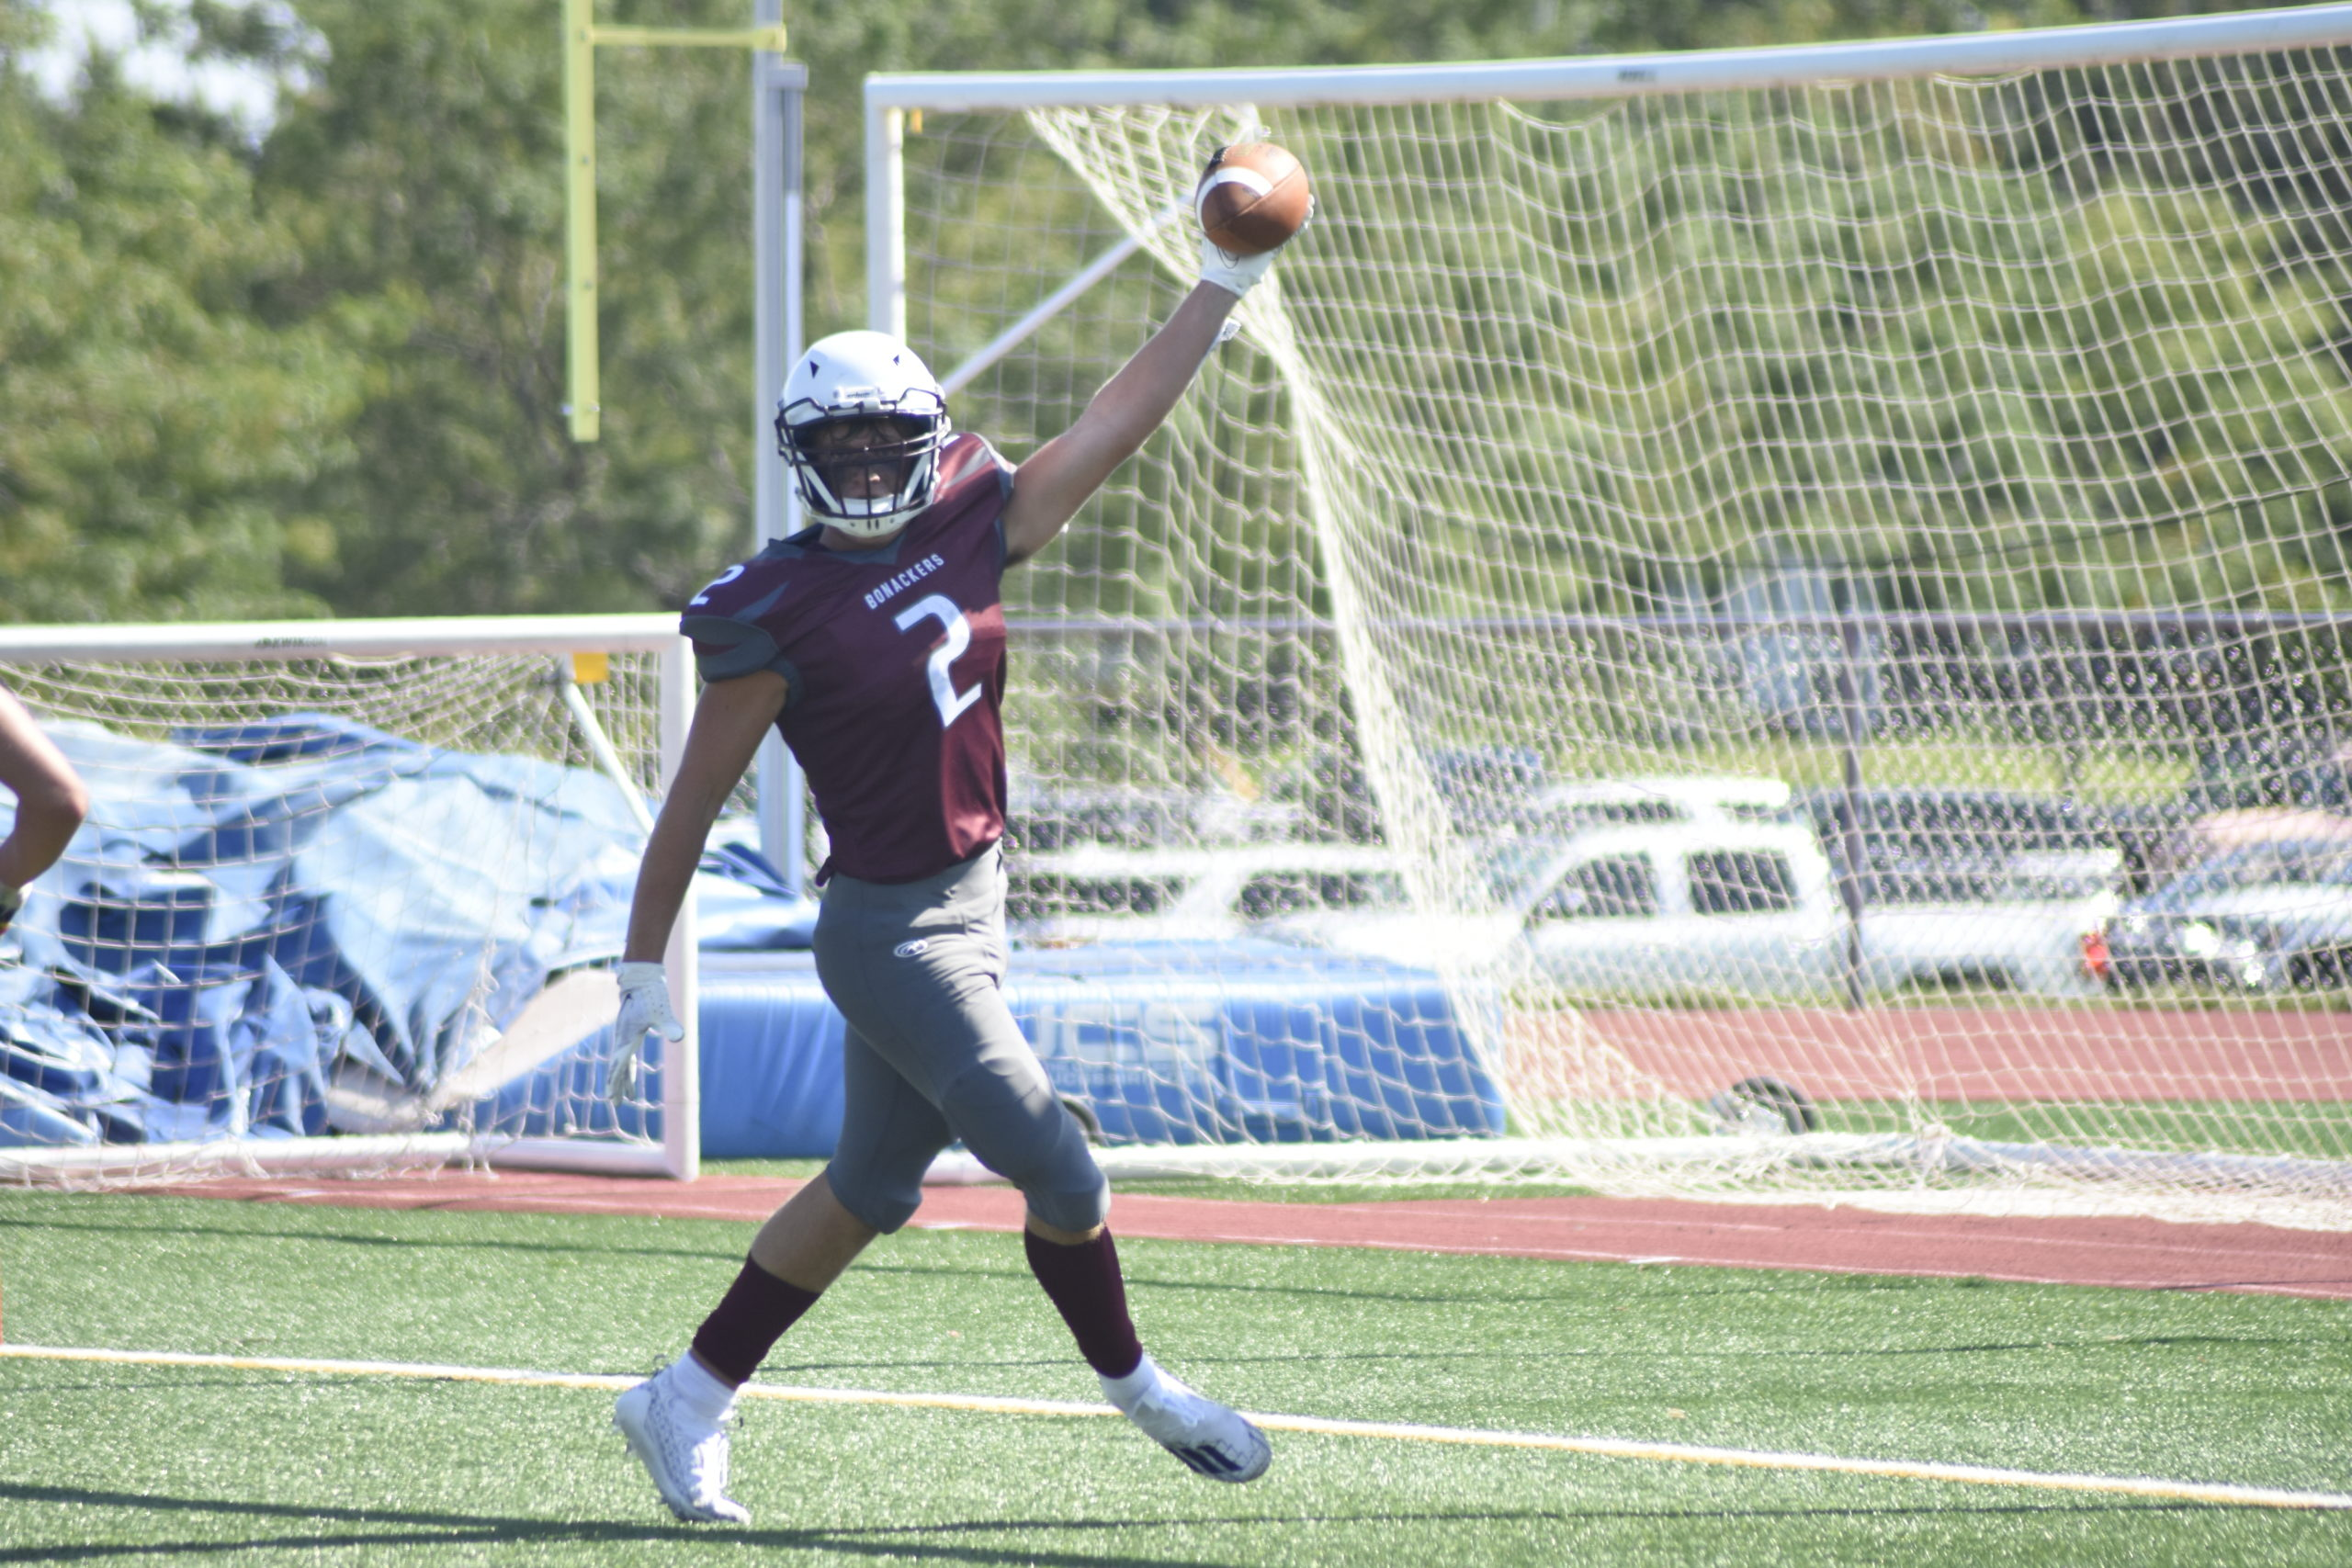 Finn Byrnes scores the first of three touchdowns in the Bonackers 42-14 season-opening victory over Hampton Bays on Saturday, September 11.